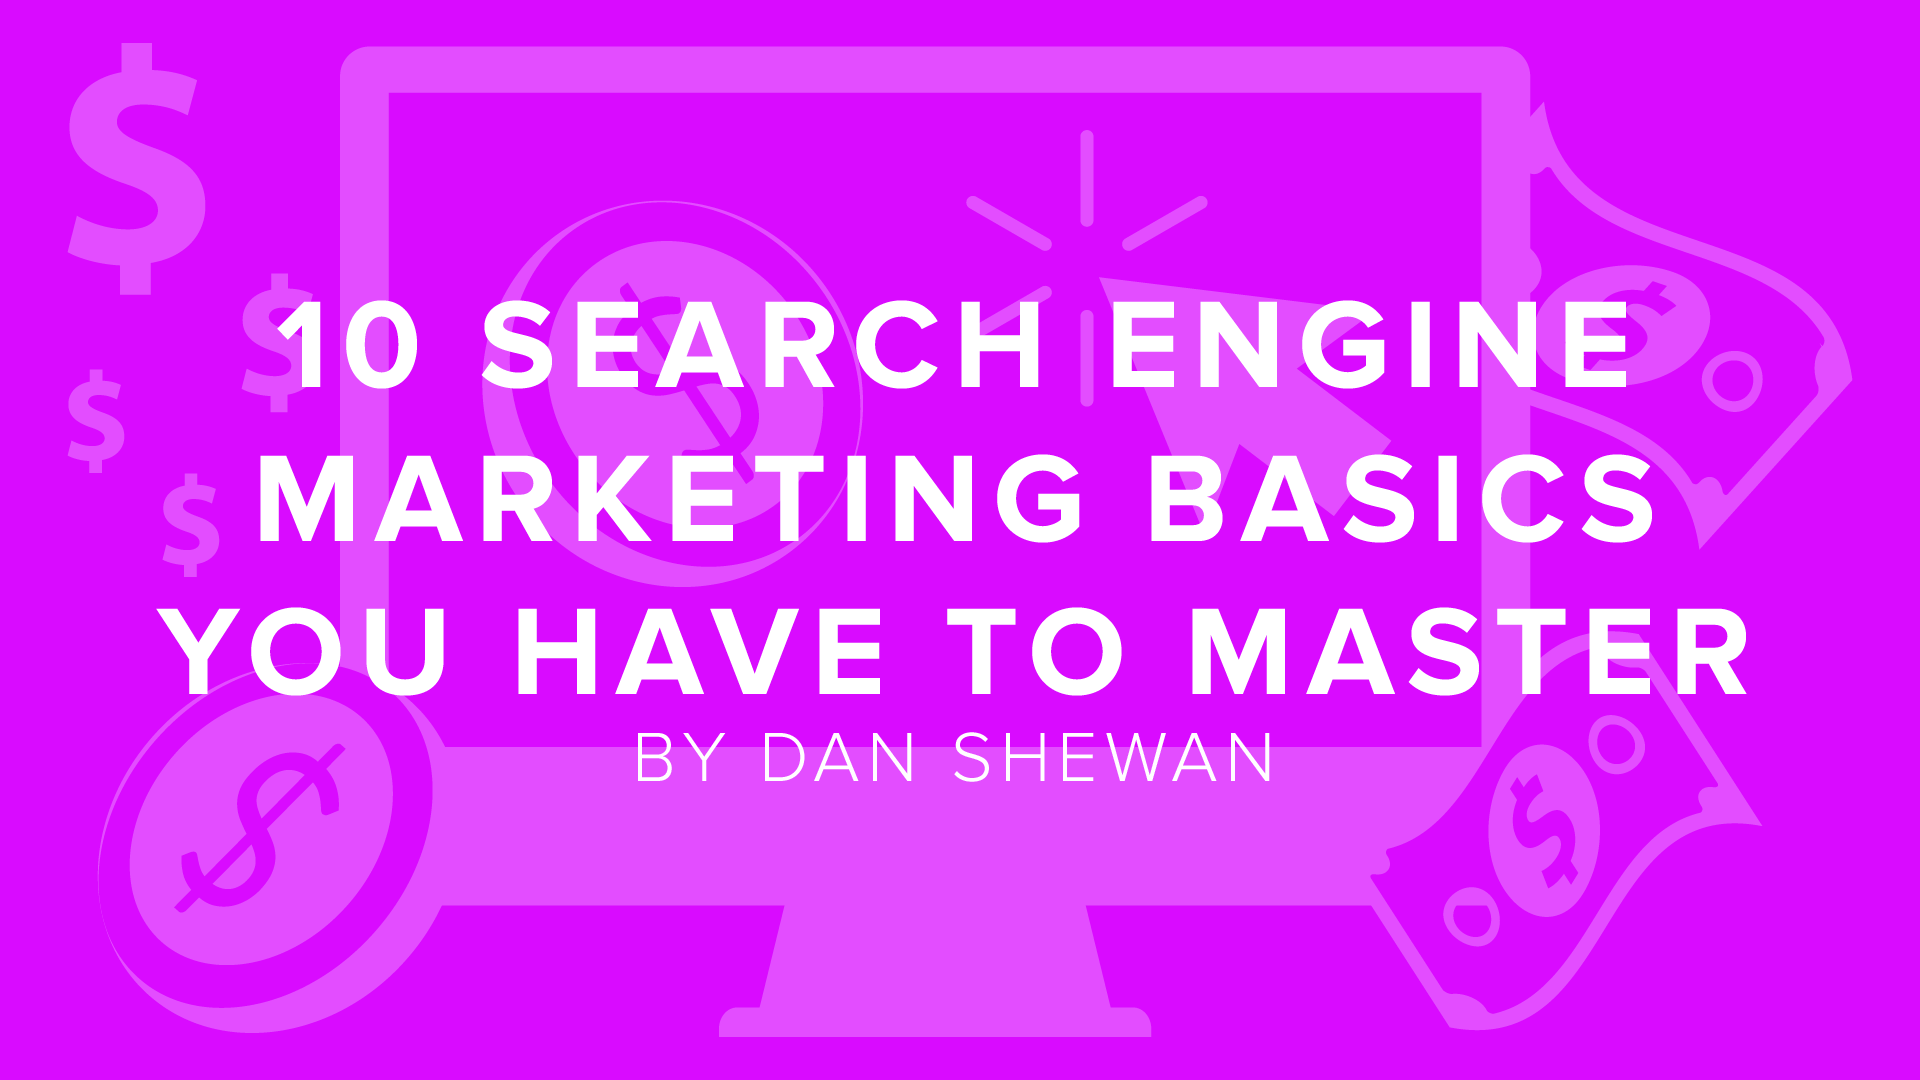 10 Search Engine Marketing Basics You Have to Master | DigitalChalk Blog thumbnail